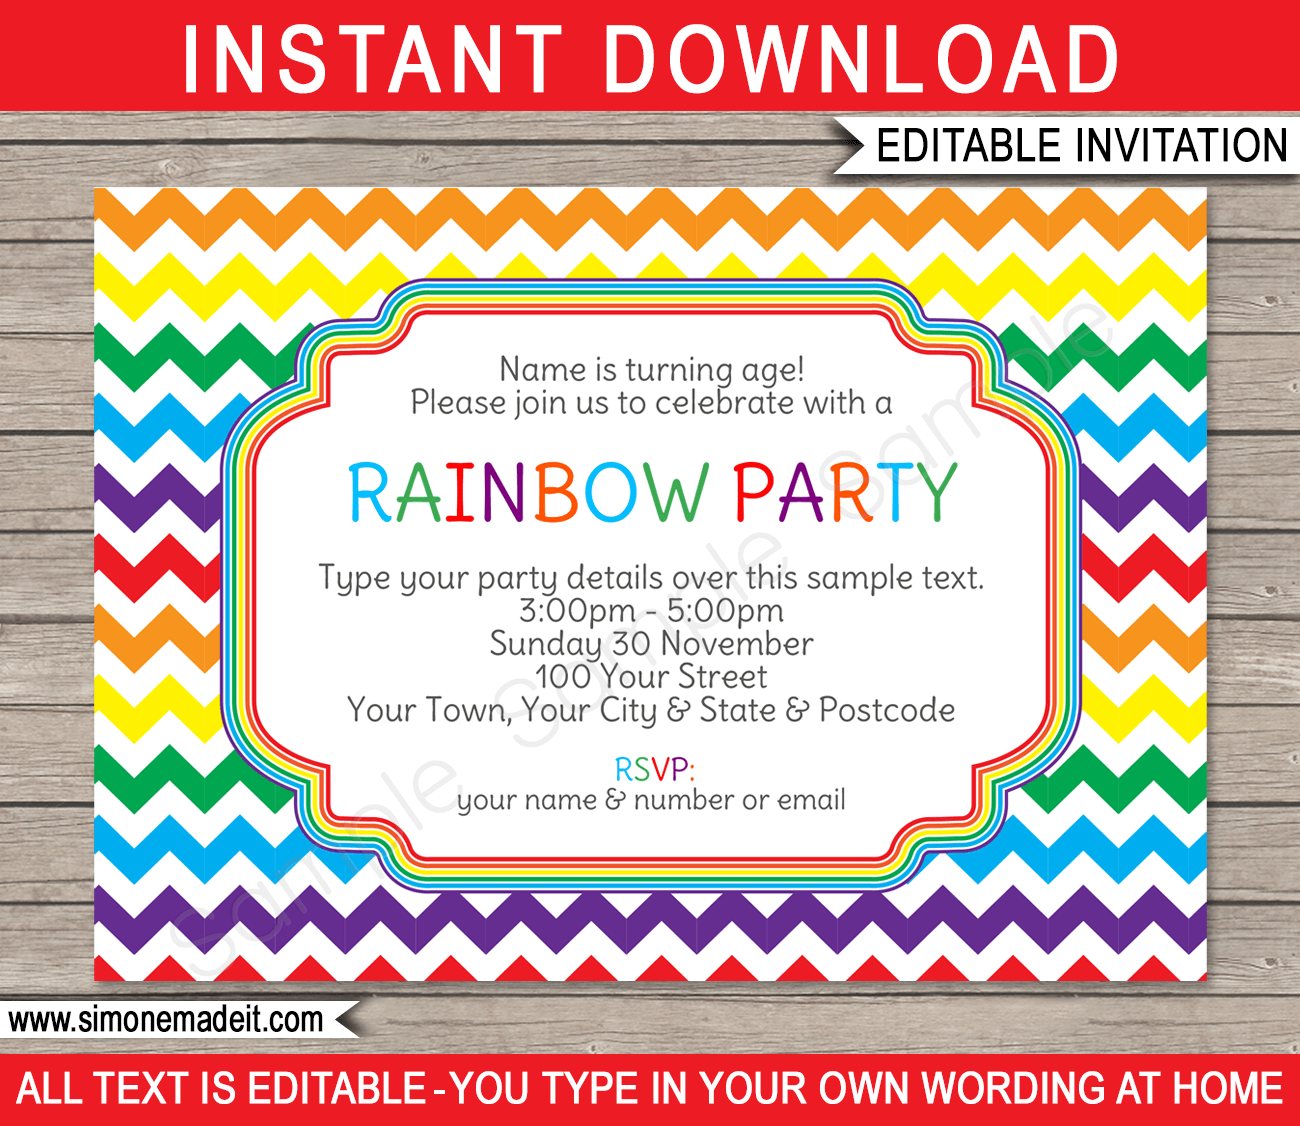 Rainbow Party Invitations | Colorful Chevron | Birthday Party | Editable  DIY Theme Template | INSTANT  Invitation Birthday Template